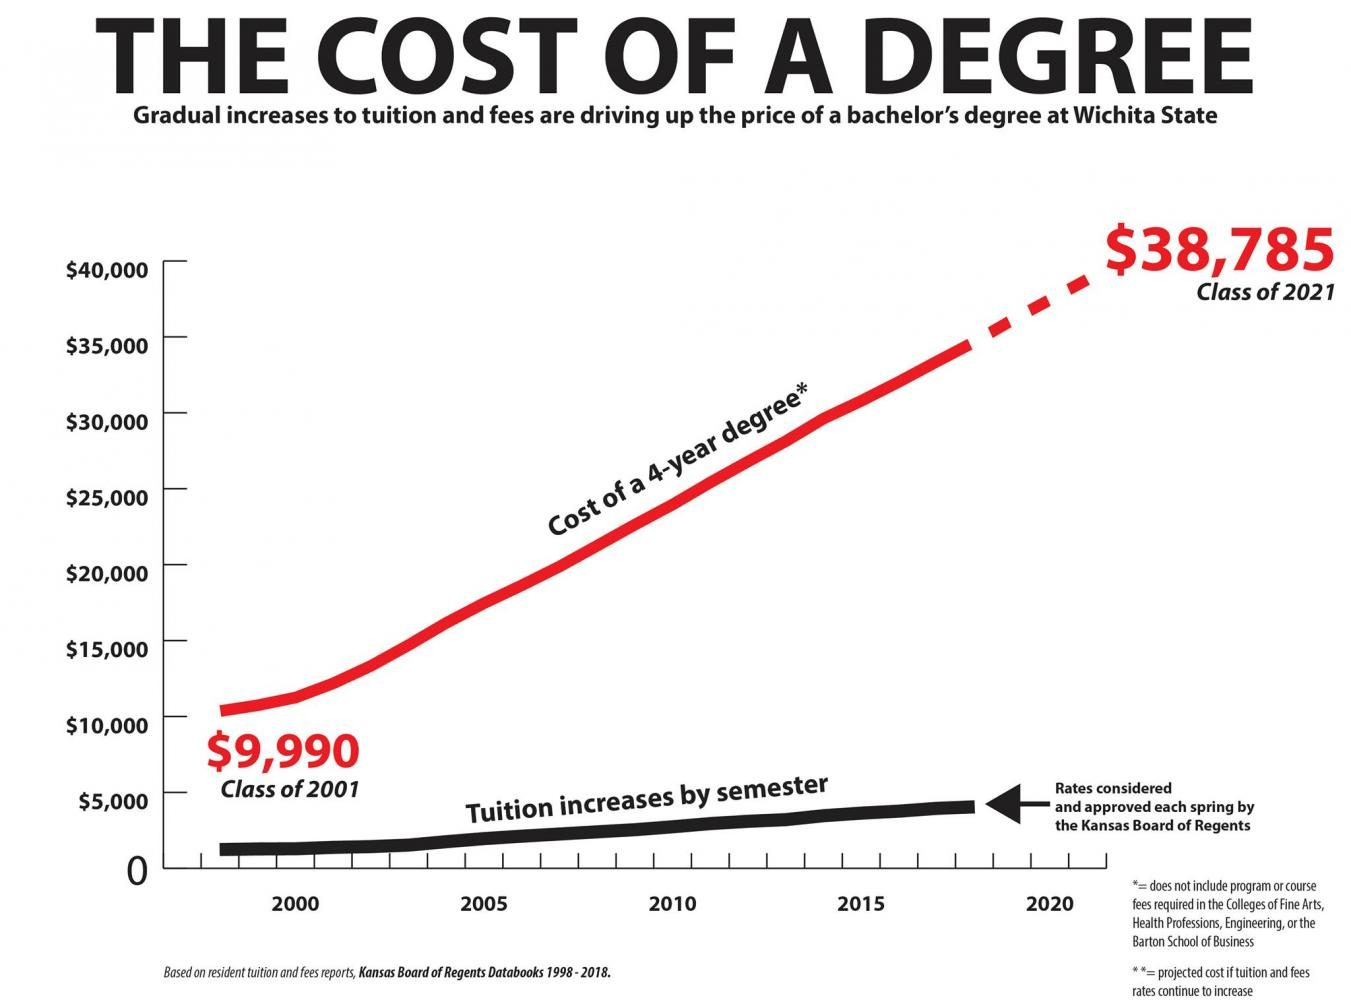 The+cost+of+a+degree+at+Wichita+State+continues+to+climb%2C+tuition+and+fees+increase